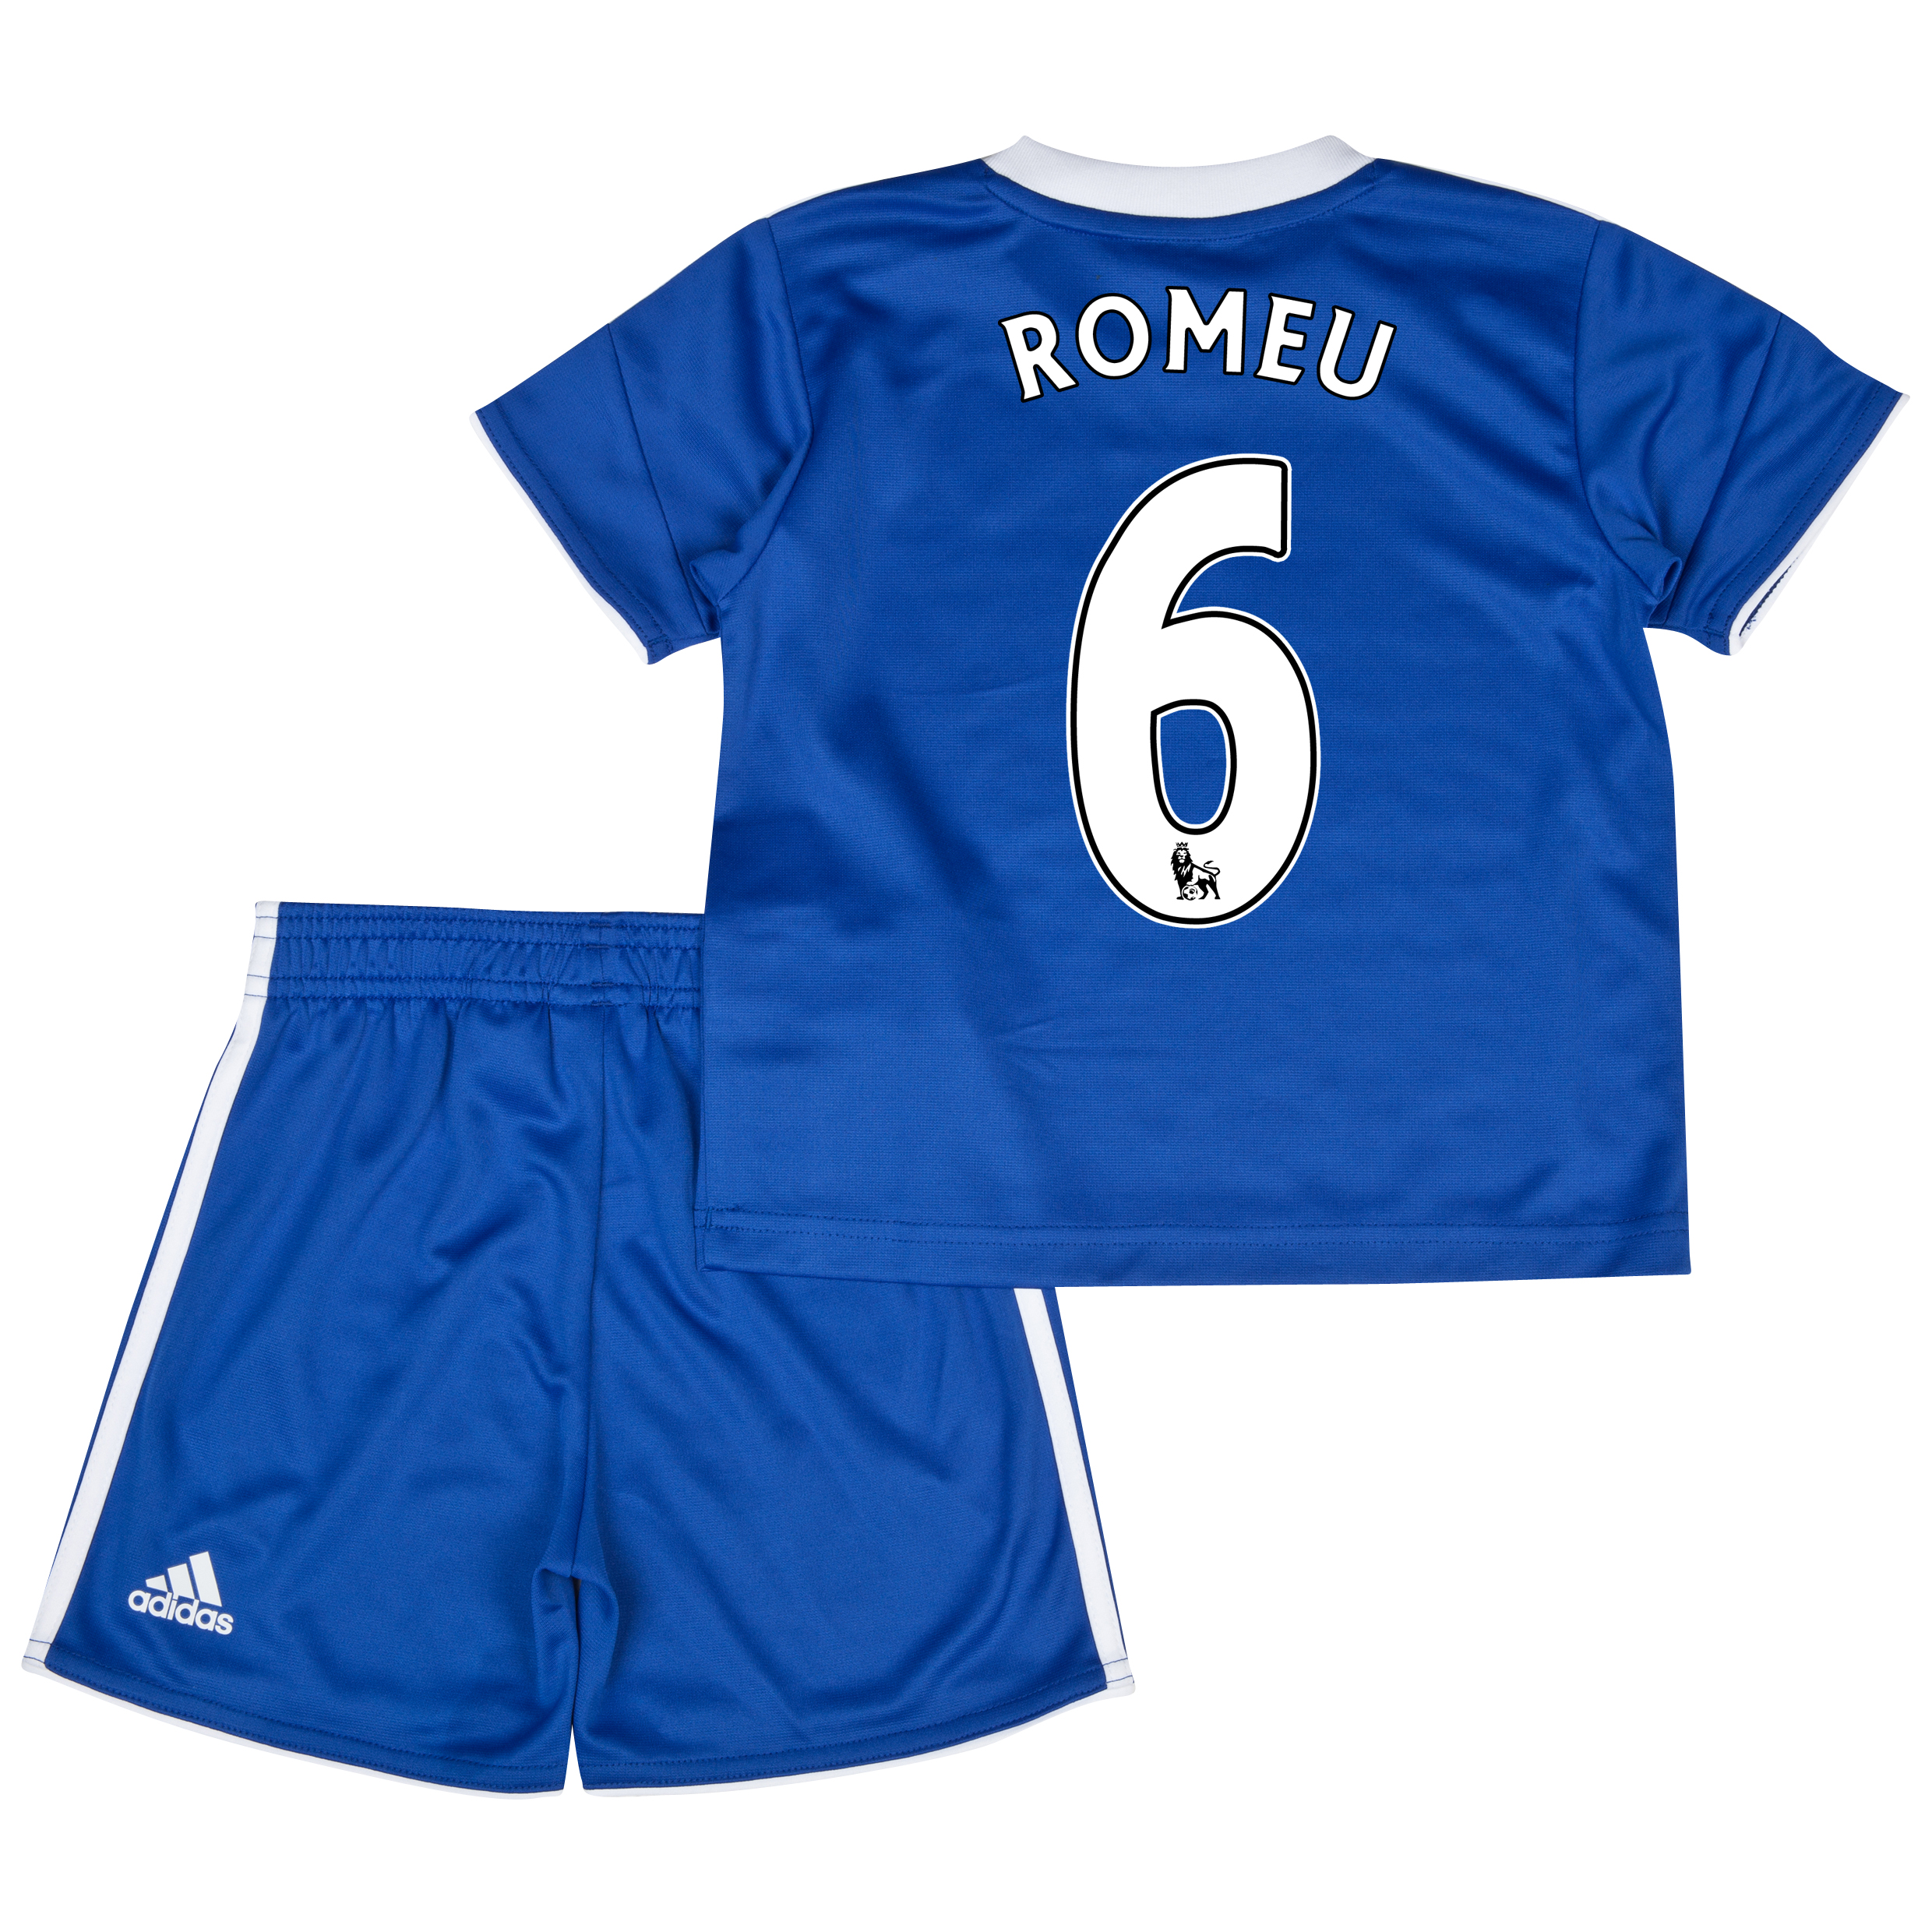 Chelsea Home Mini Kit 2013/14 with Romeu 6 printing